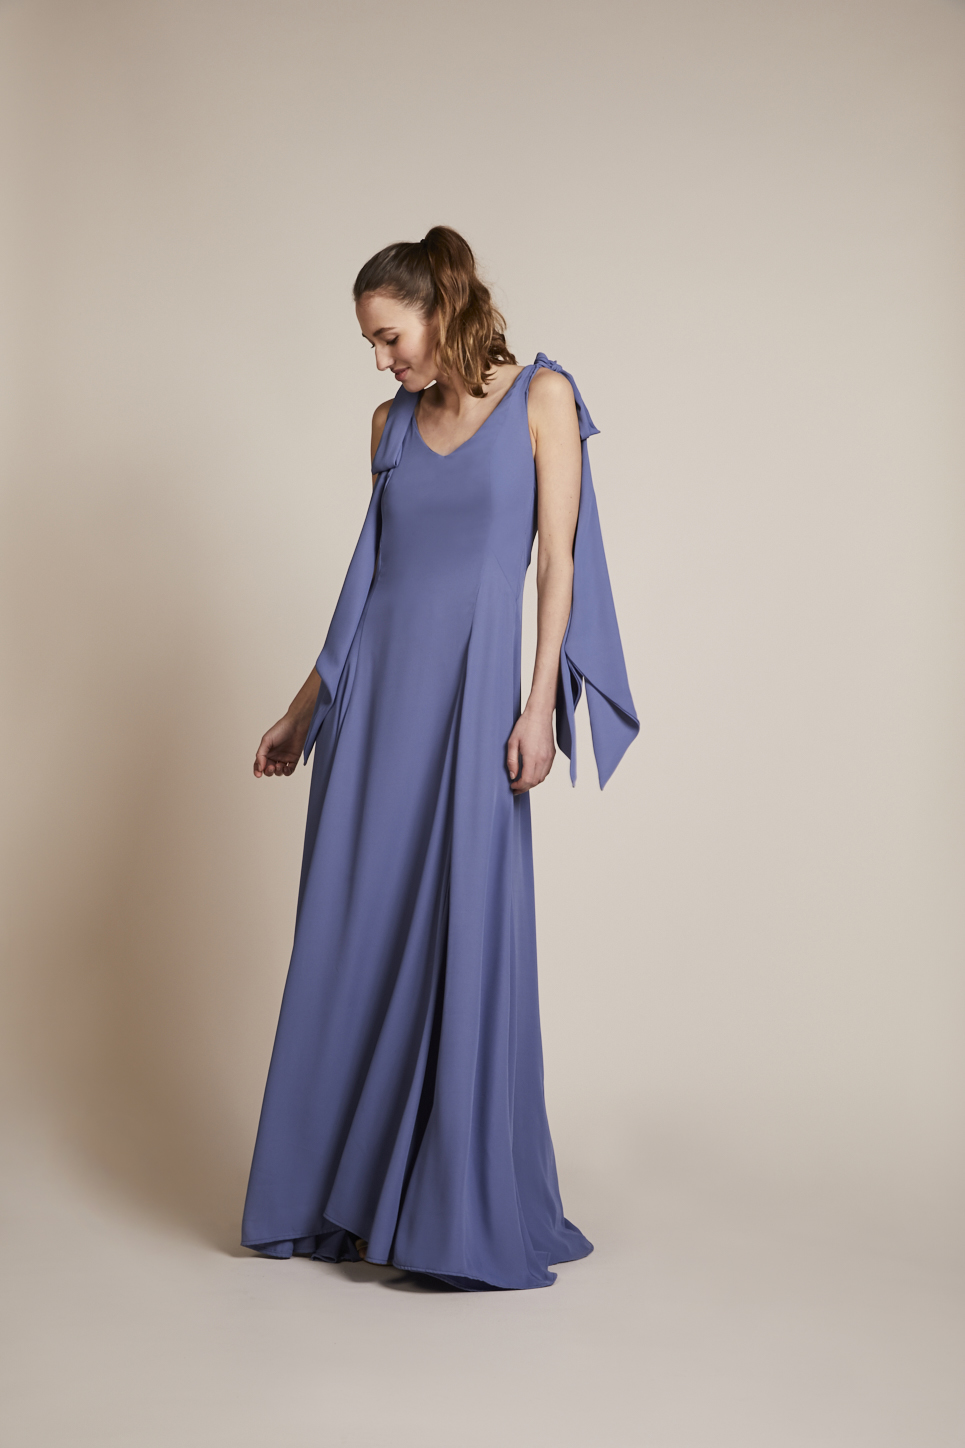 Rewritten Seville dress in bluebell.